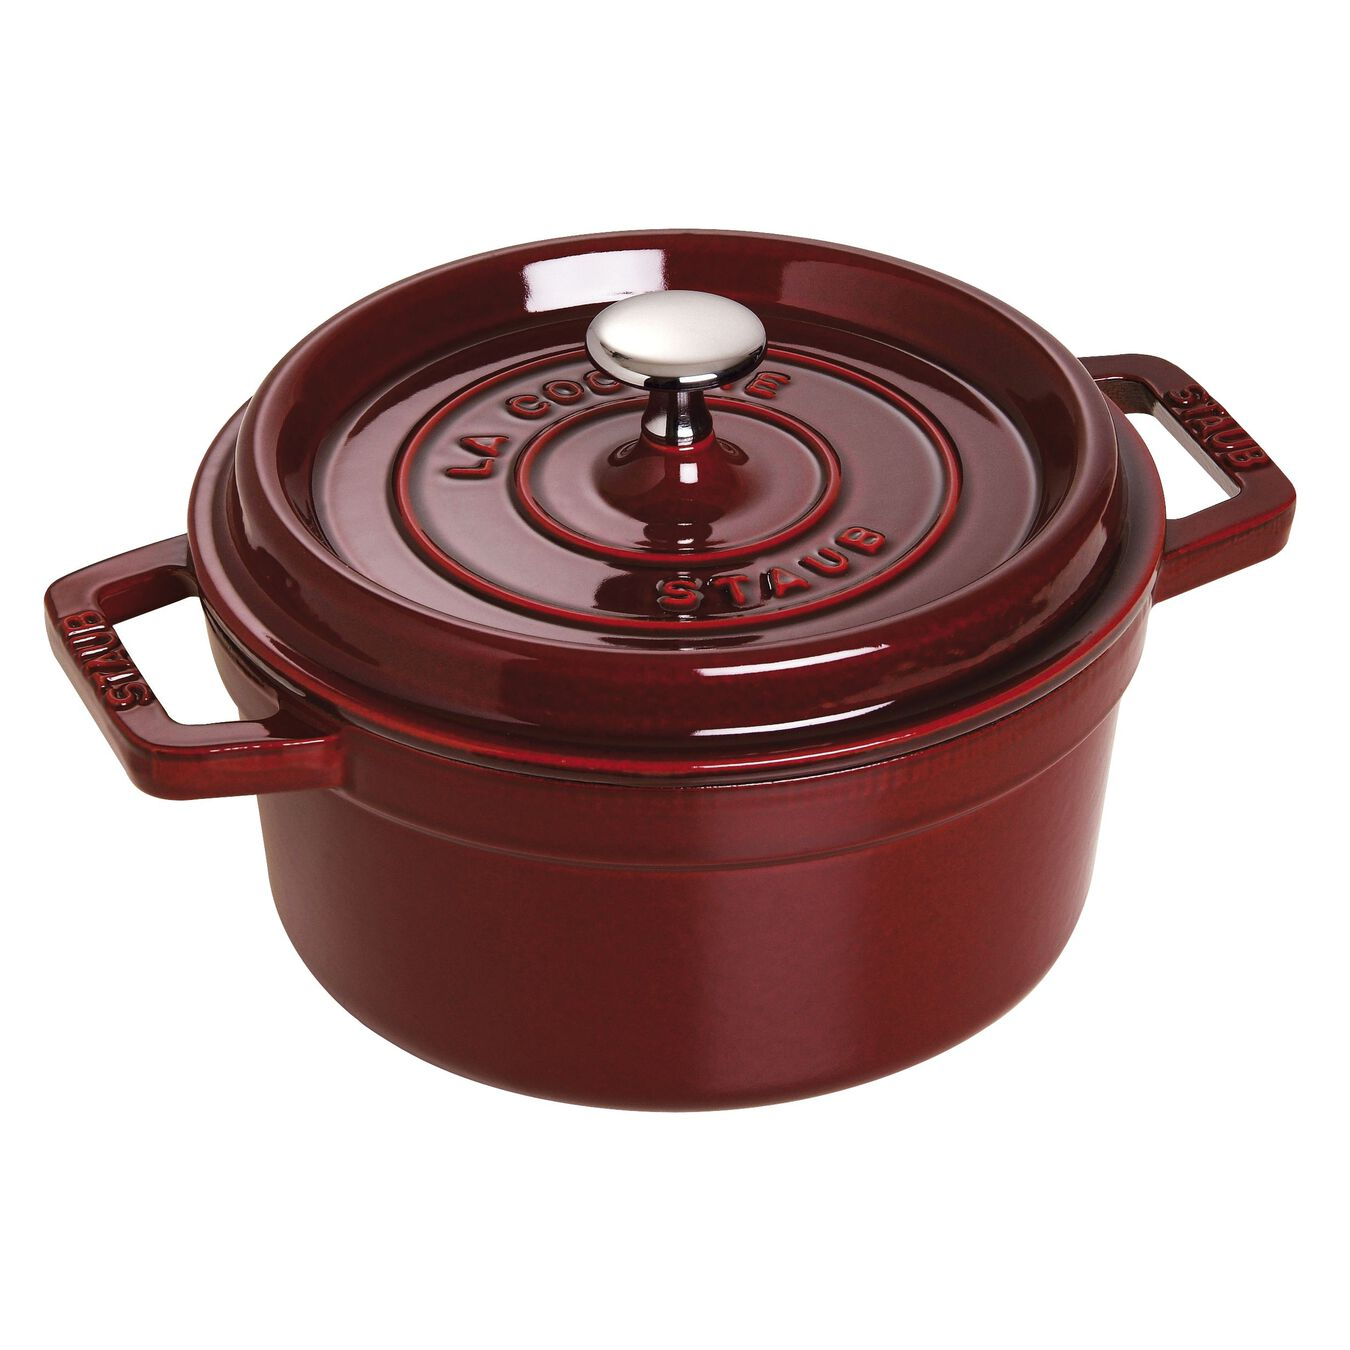 Cocotte 22 cm, rund, Grenadine-Rot, Gusseisen,,large 1